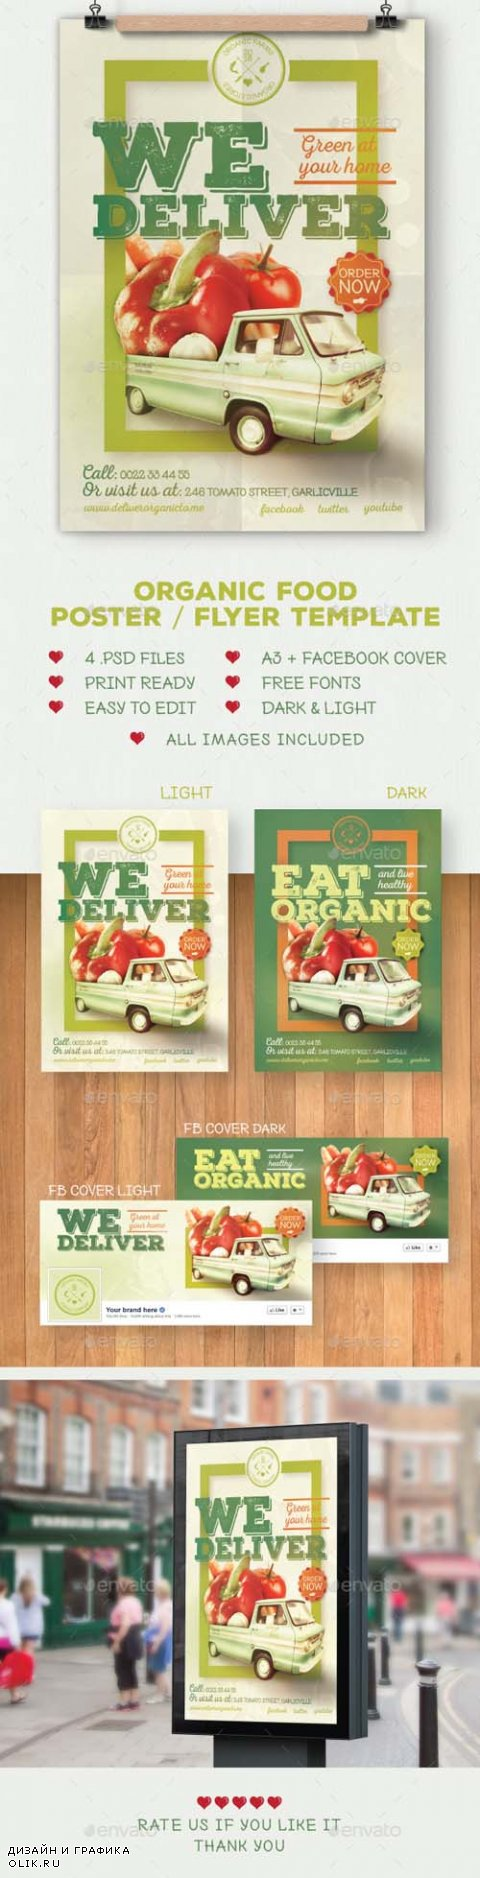 Organic food poster / flyer template 14764471